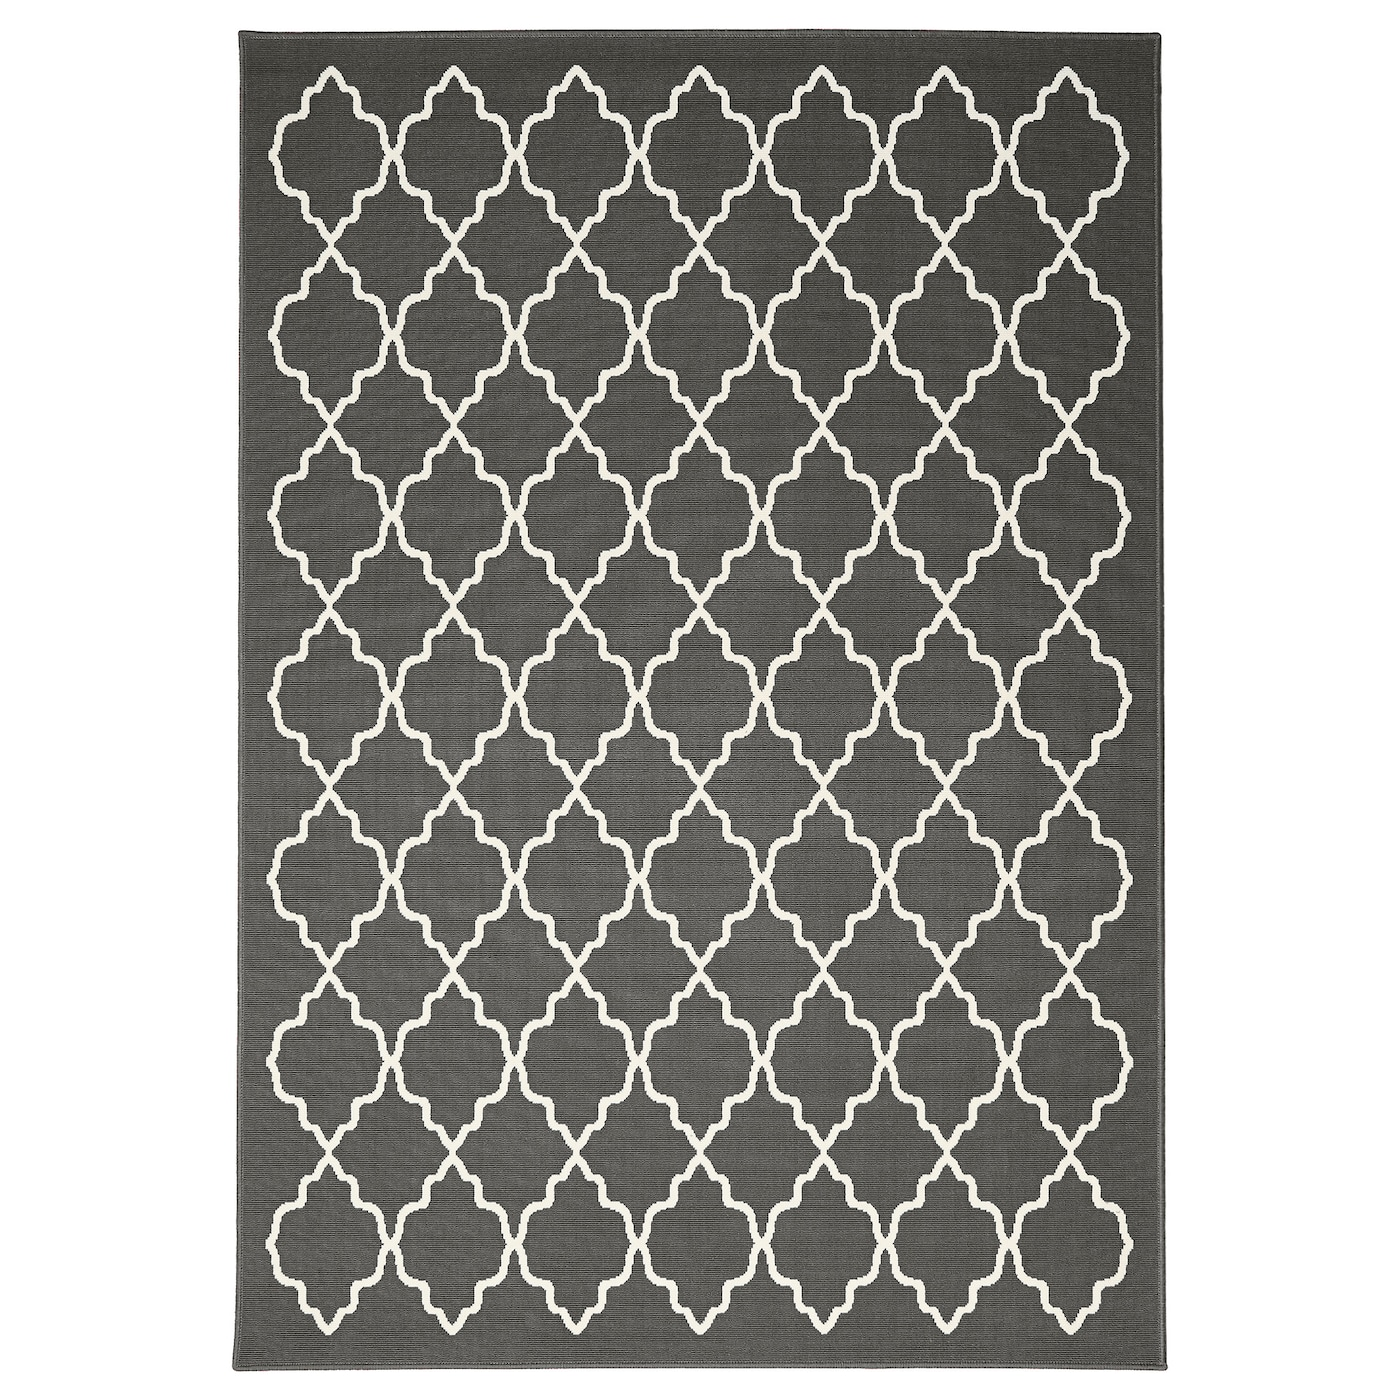 black and white rug ikea. ikea hovslund rug, low pile easy to vacuum thanks its flat surface. black and white rug ikea l